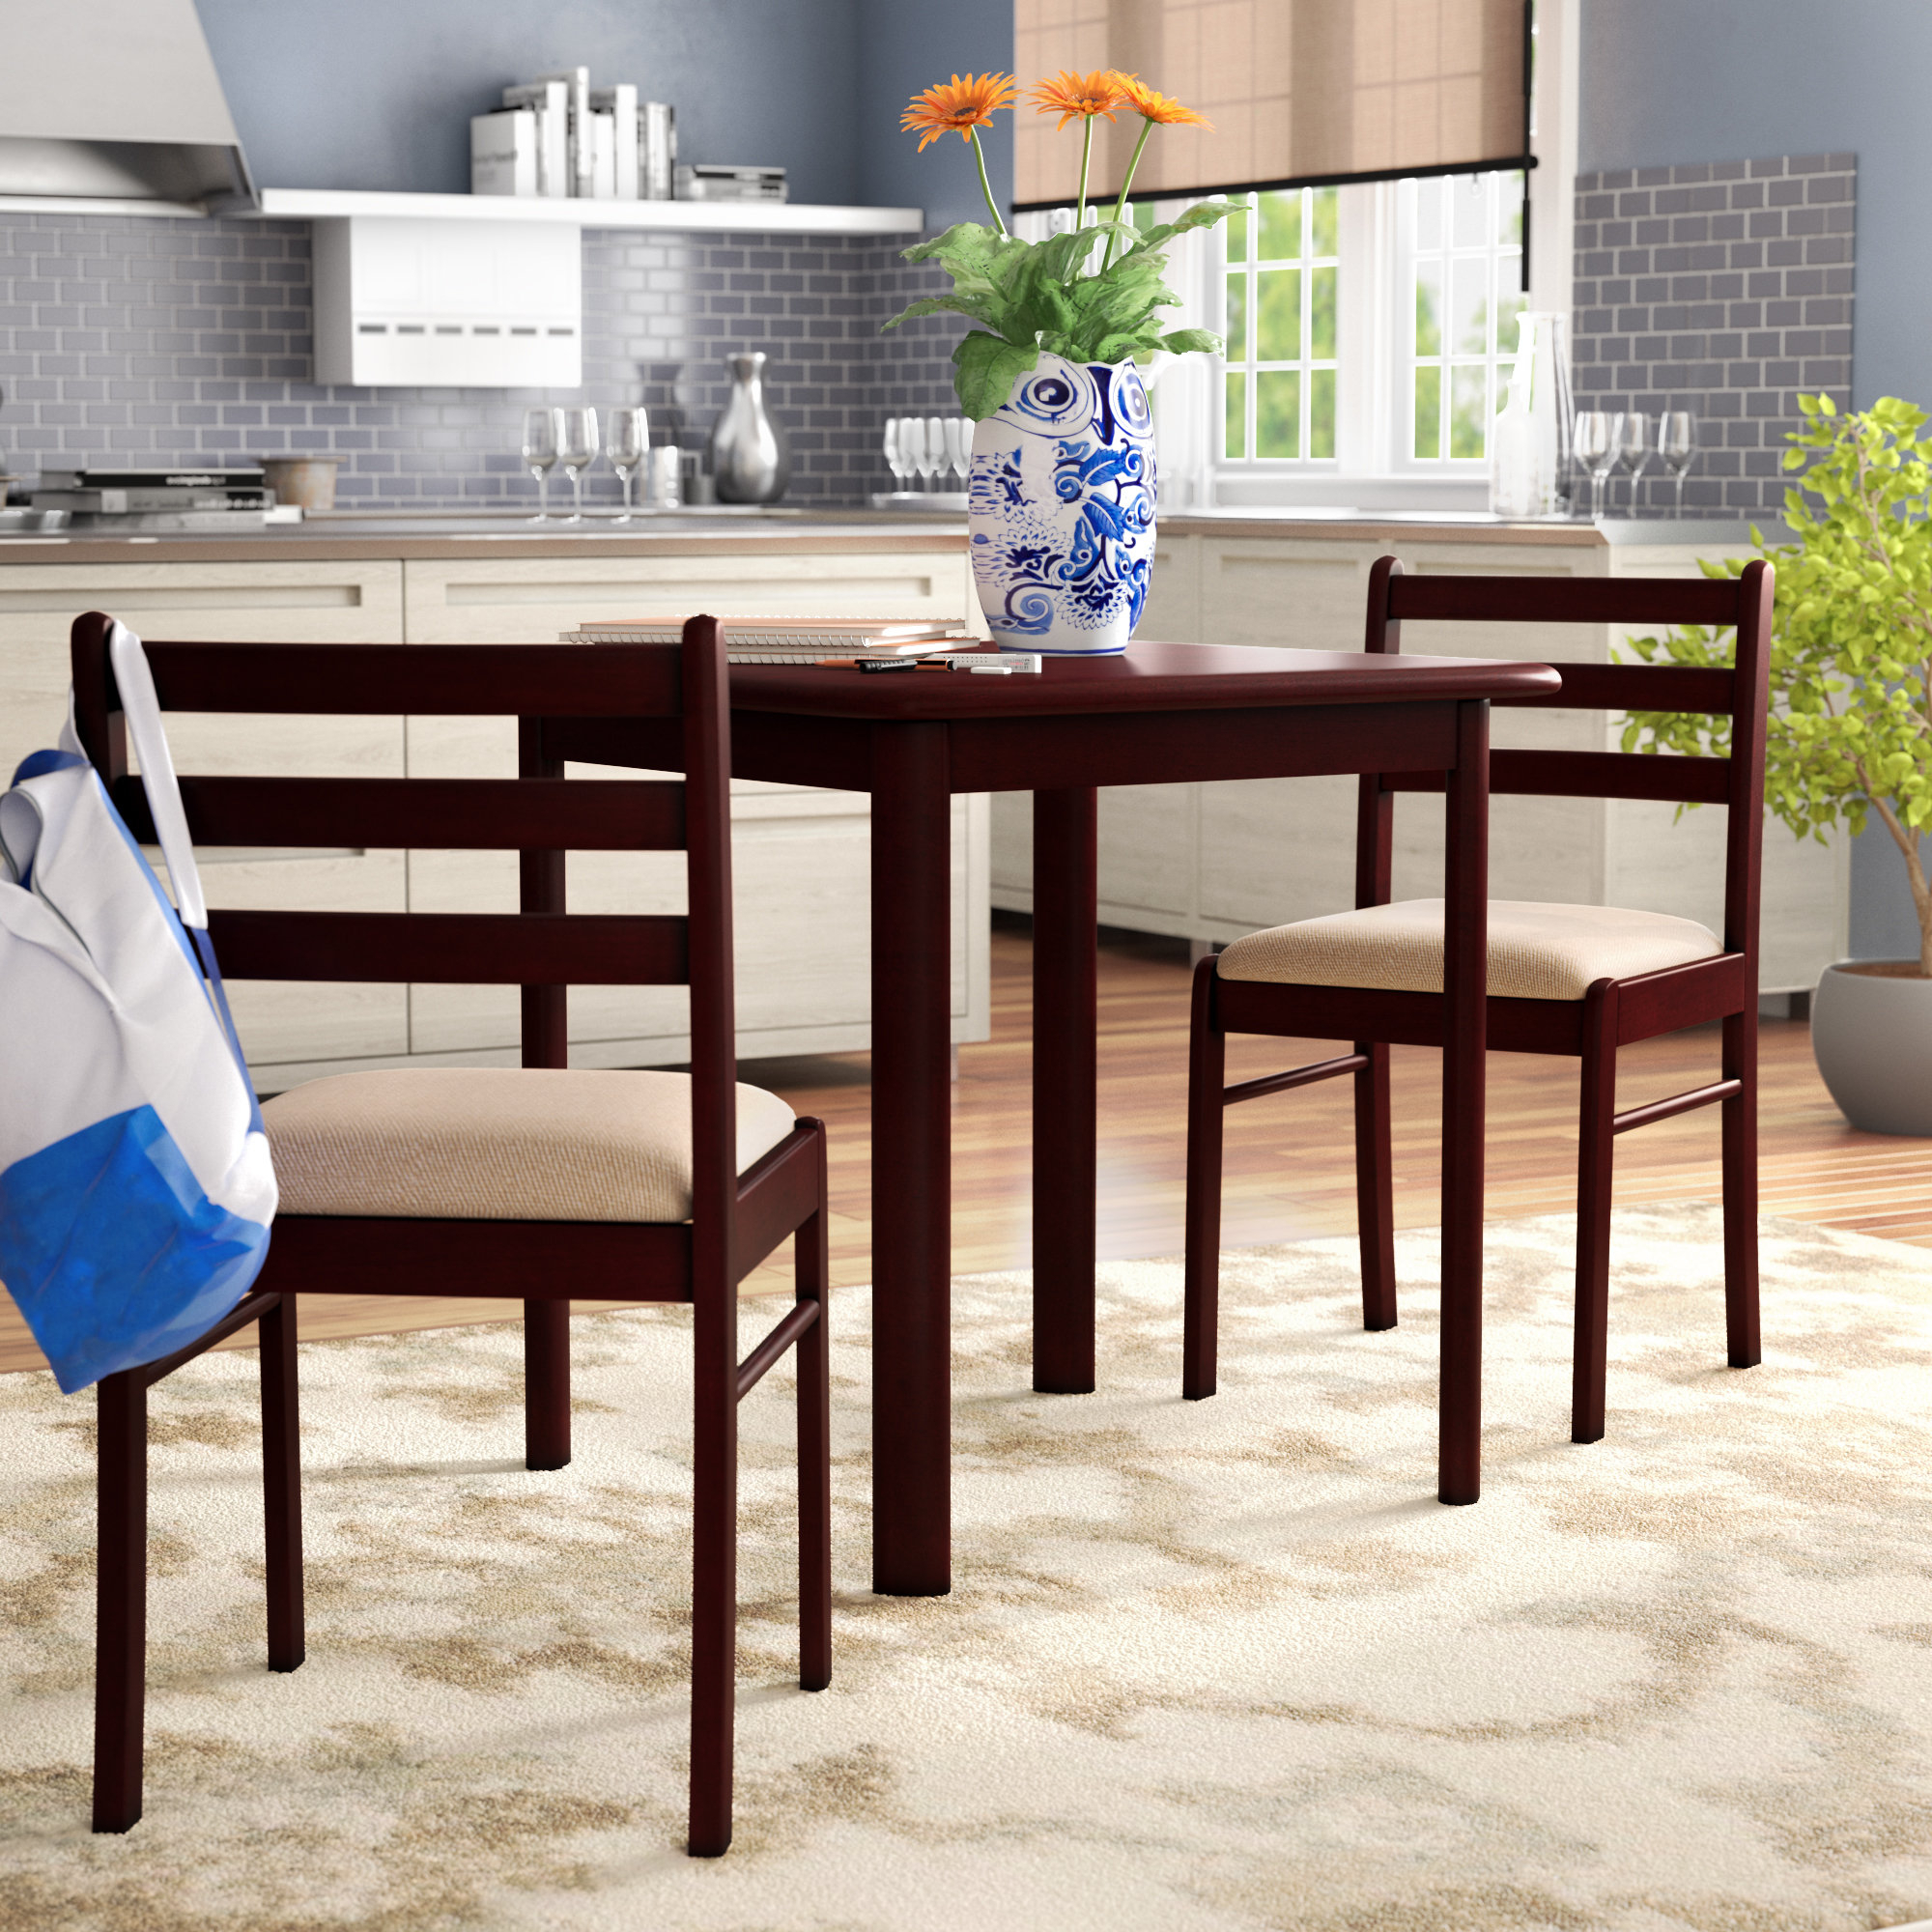 Kinsler 3 Piece Bistro Set With Regard To Fashionable Kinsler 3 Piece Bistro Sets (Gallery 1 of 20)